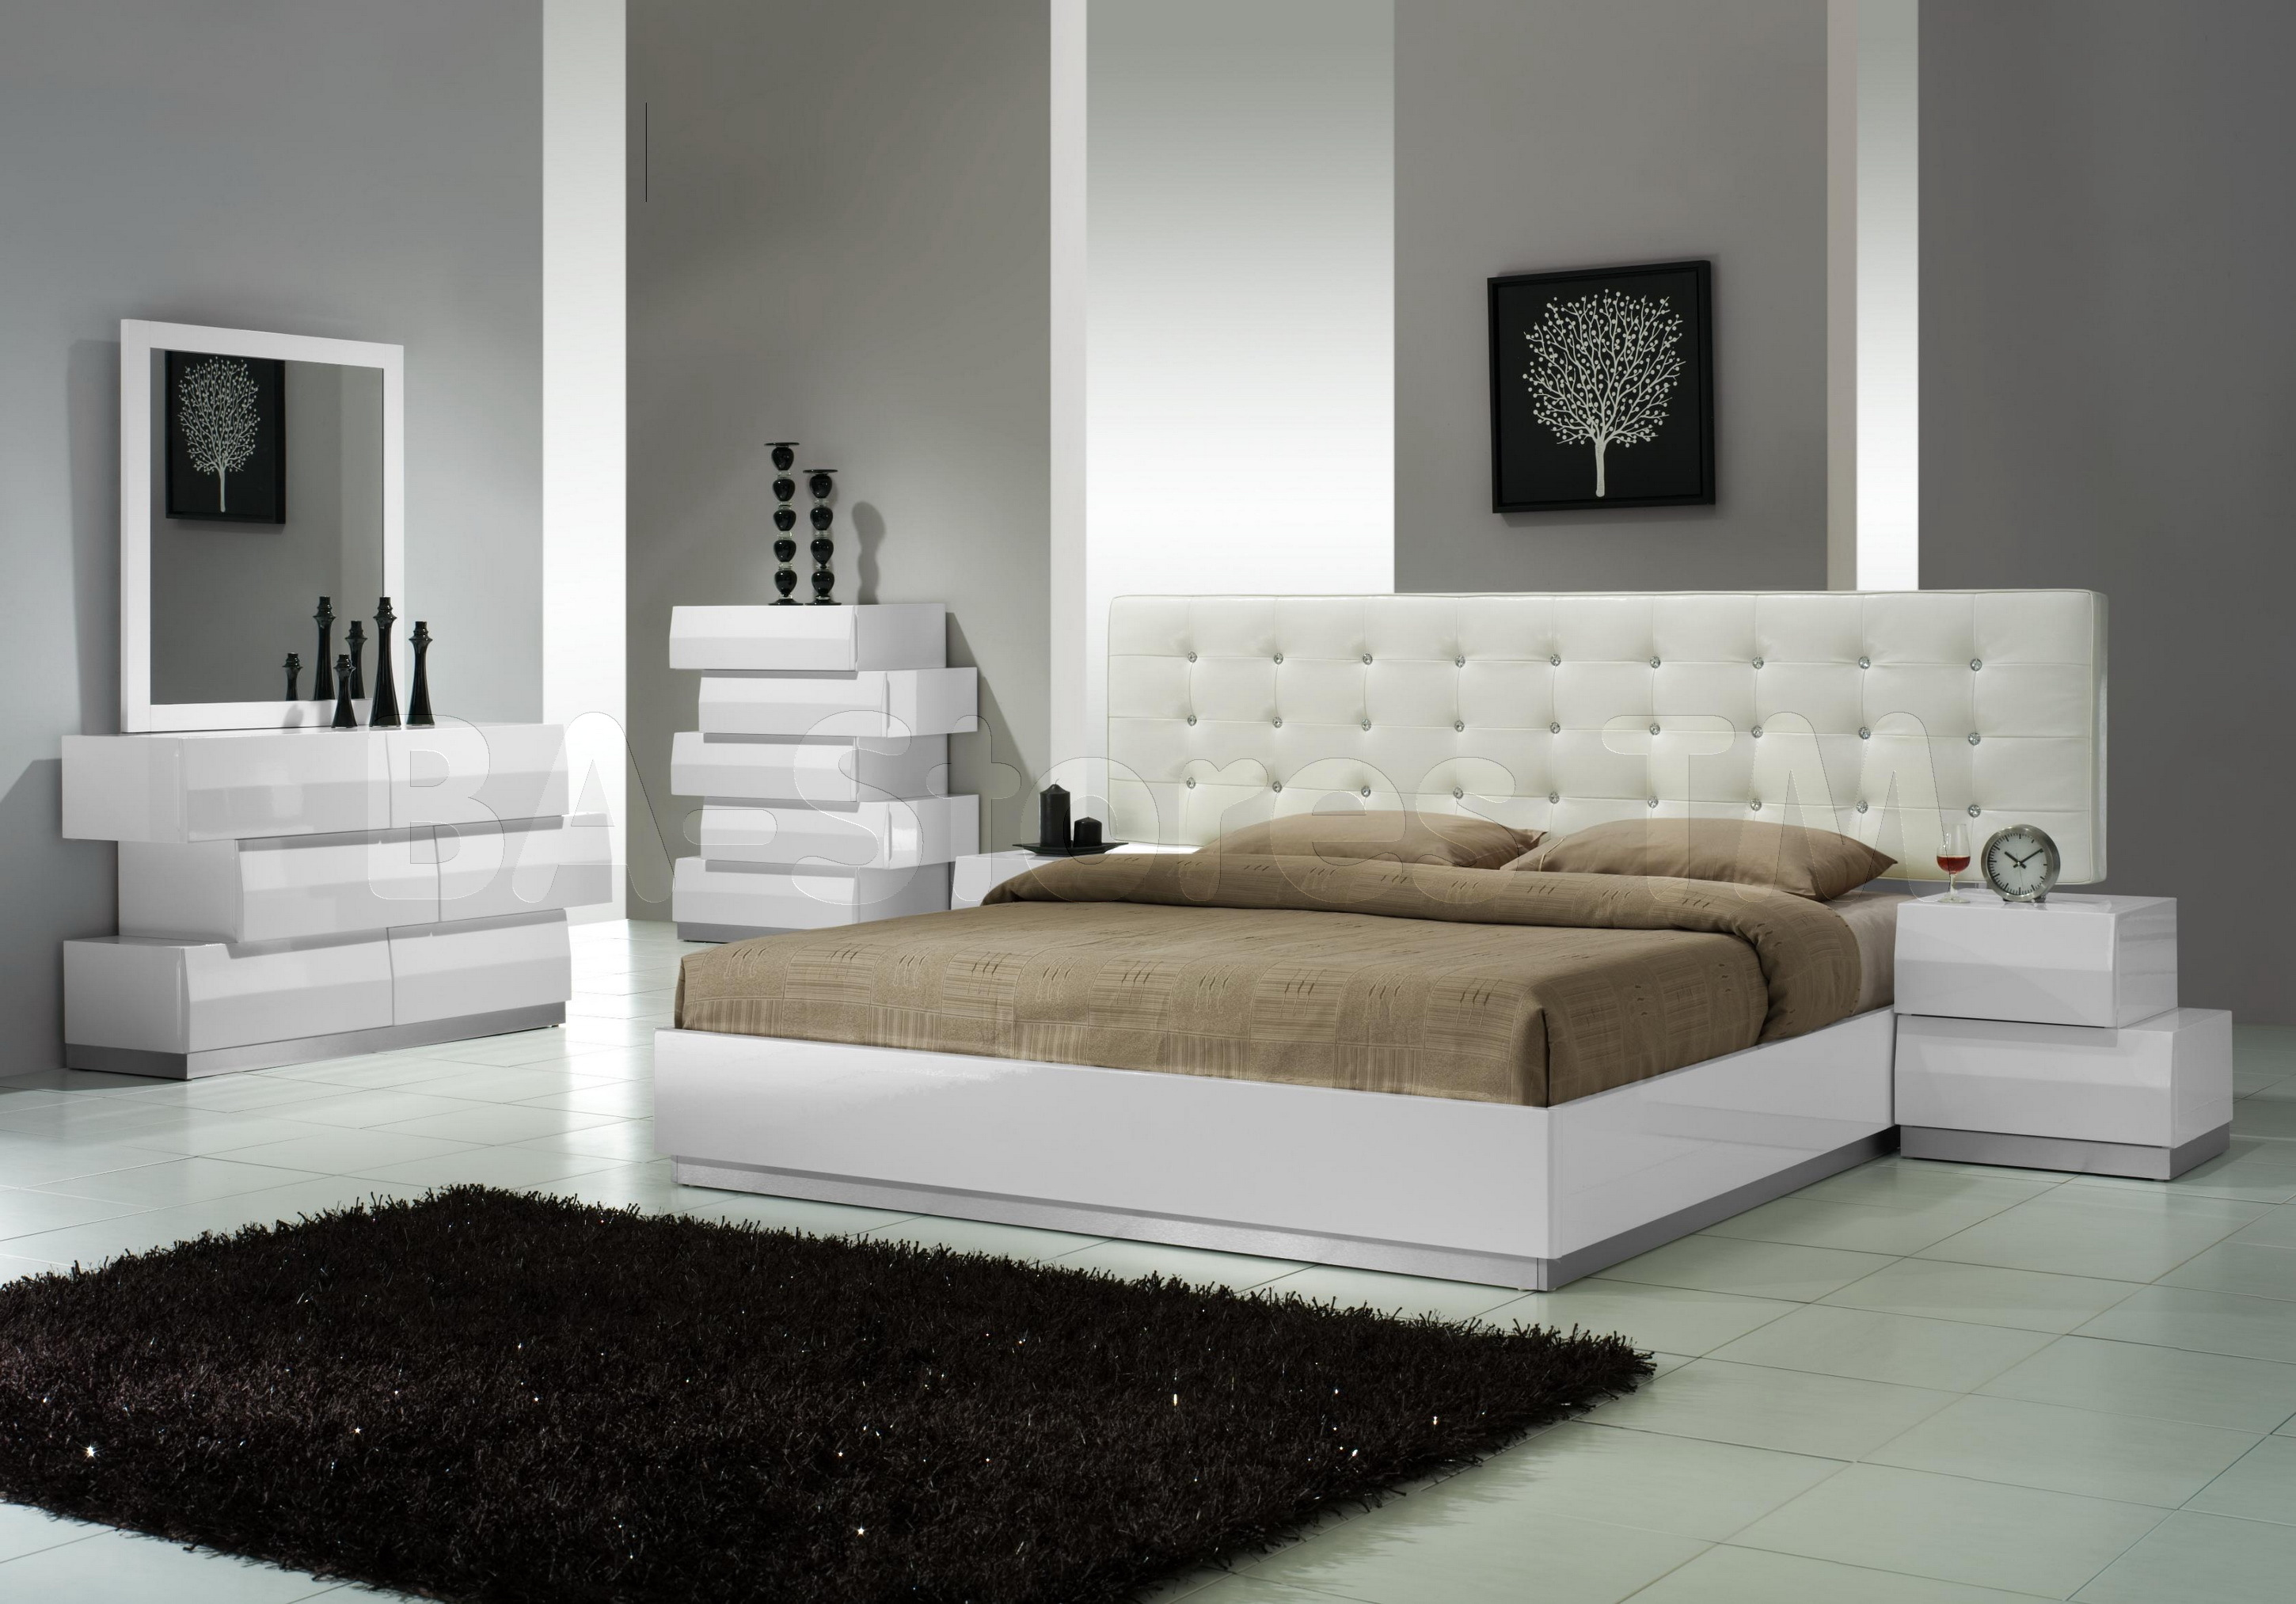 Mattress In Modern Bedroom Ideas